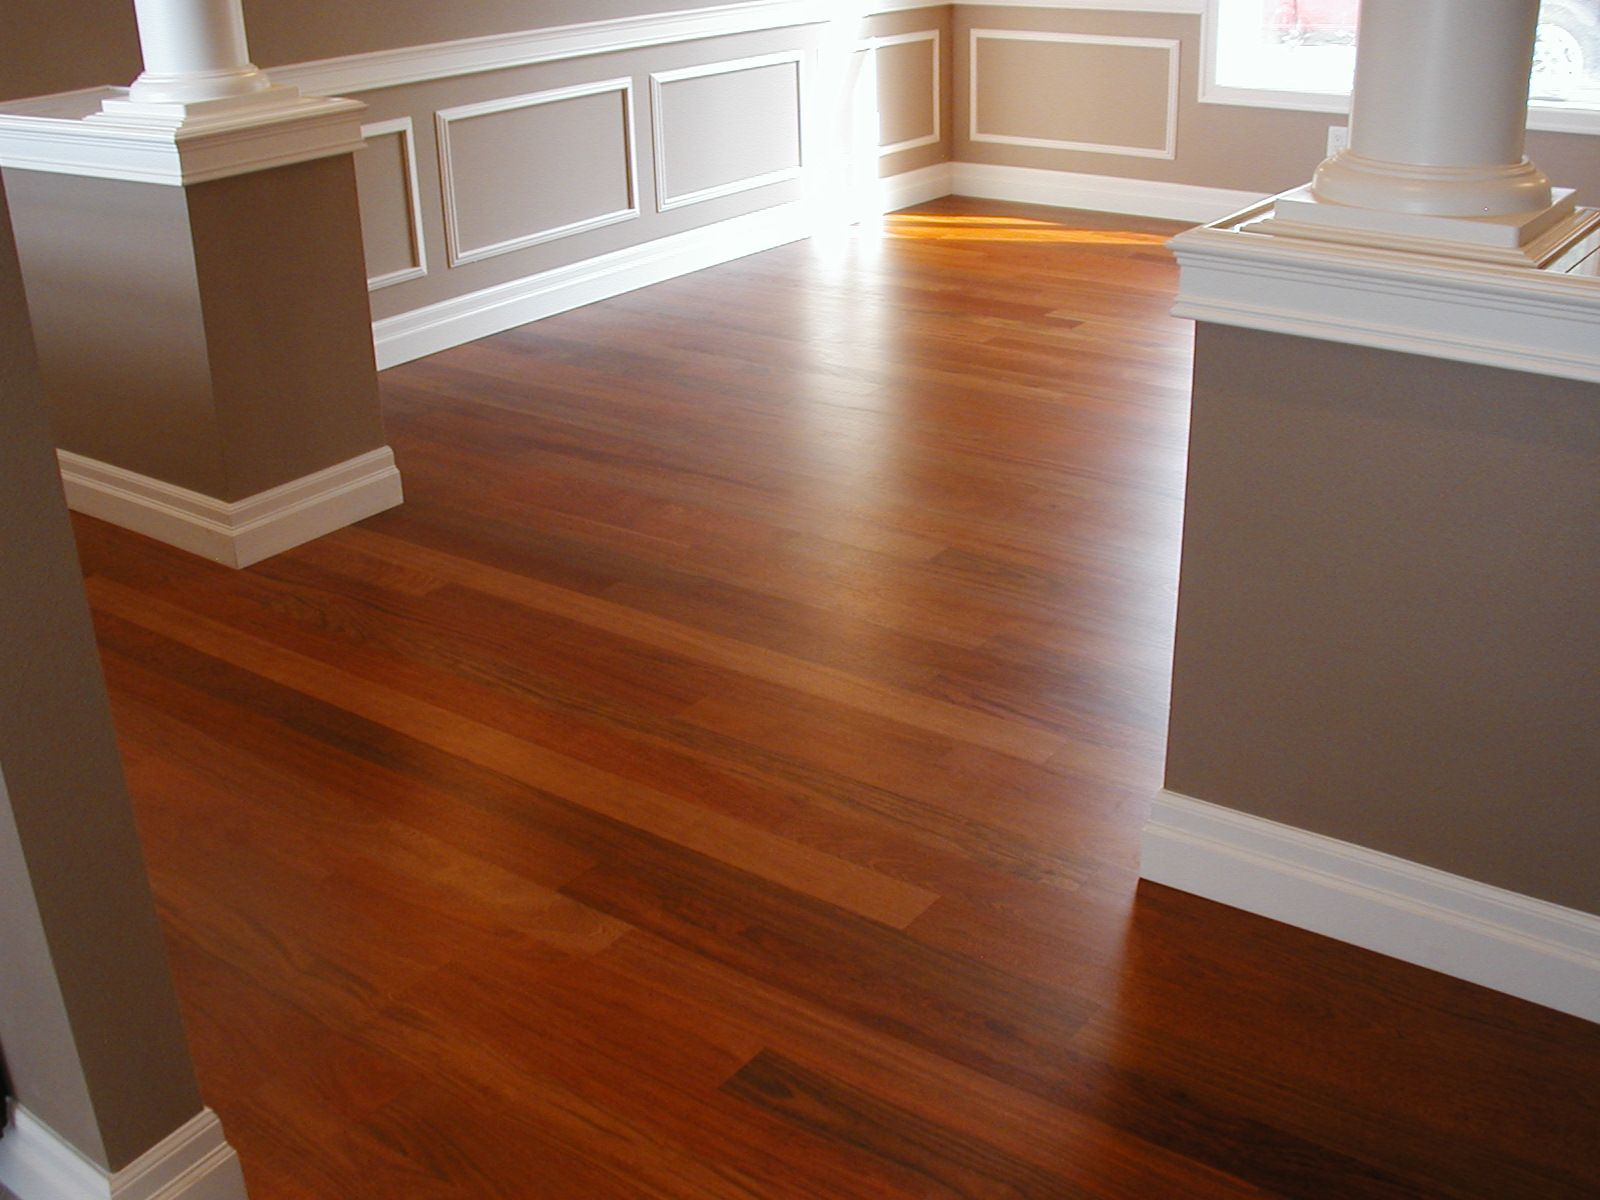 Brazilian Cherry Floors In Kitchen | Help Choosing Harwood Floor Color  (laminate, Hardwood,